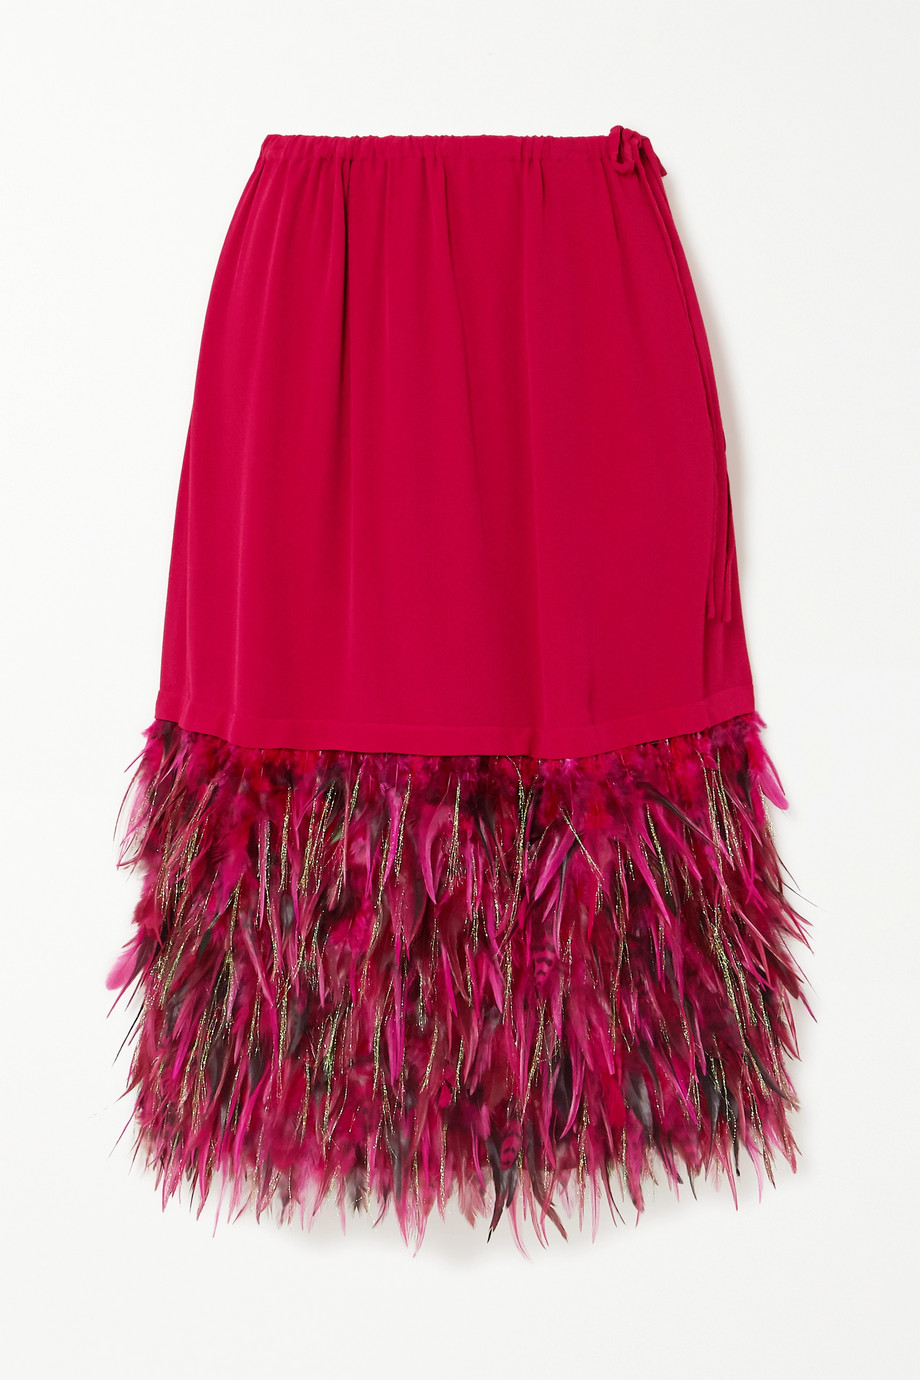 Dries Van Noten Feather-trimmed crepe skirt